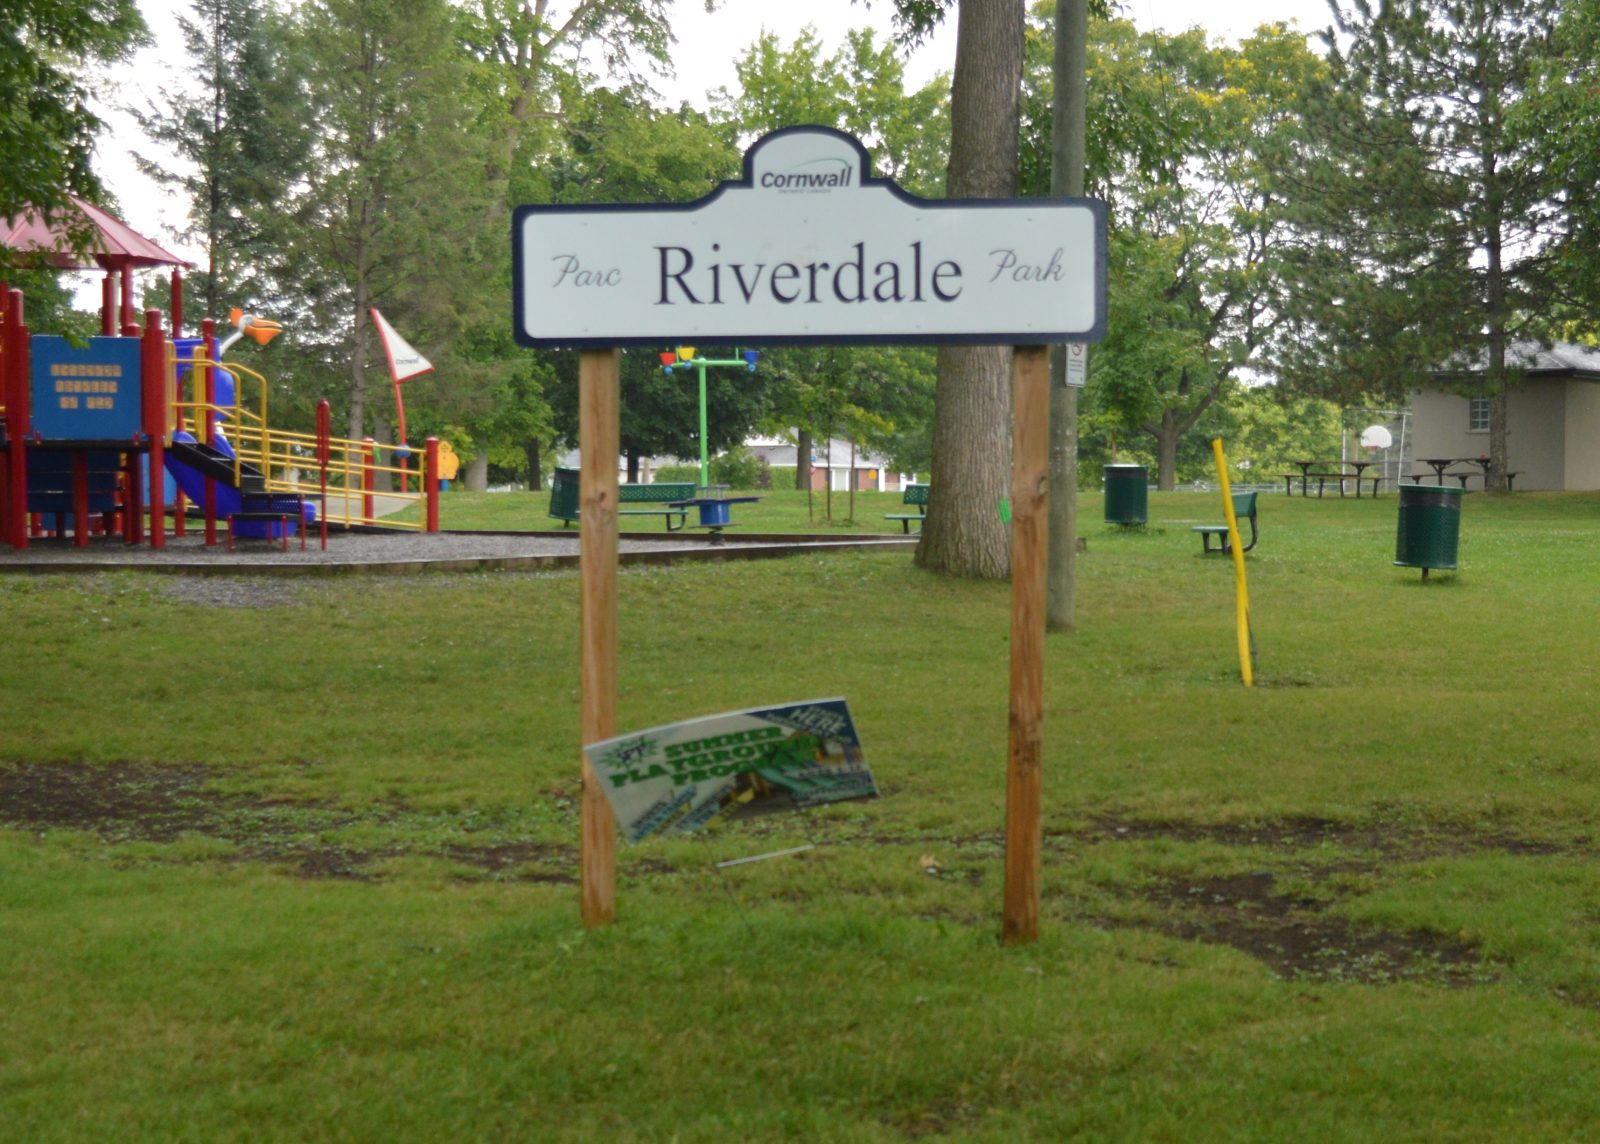 Council rejects Riverdale Park name change, to review naming process